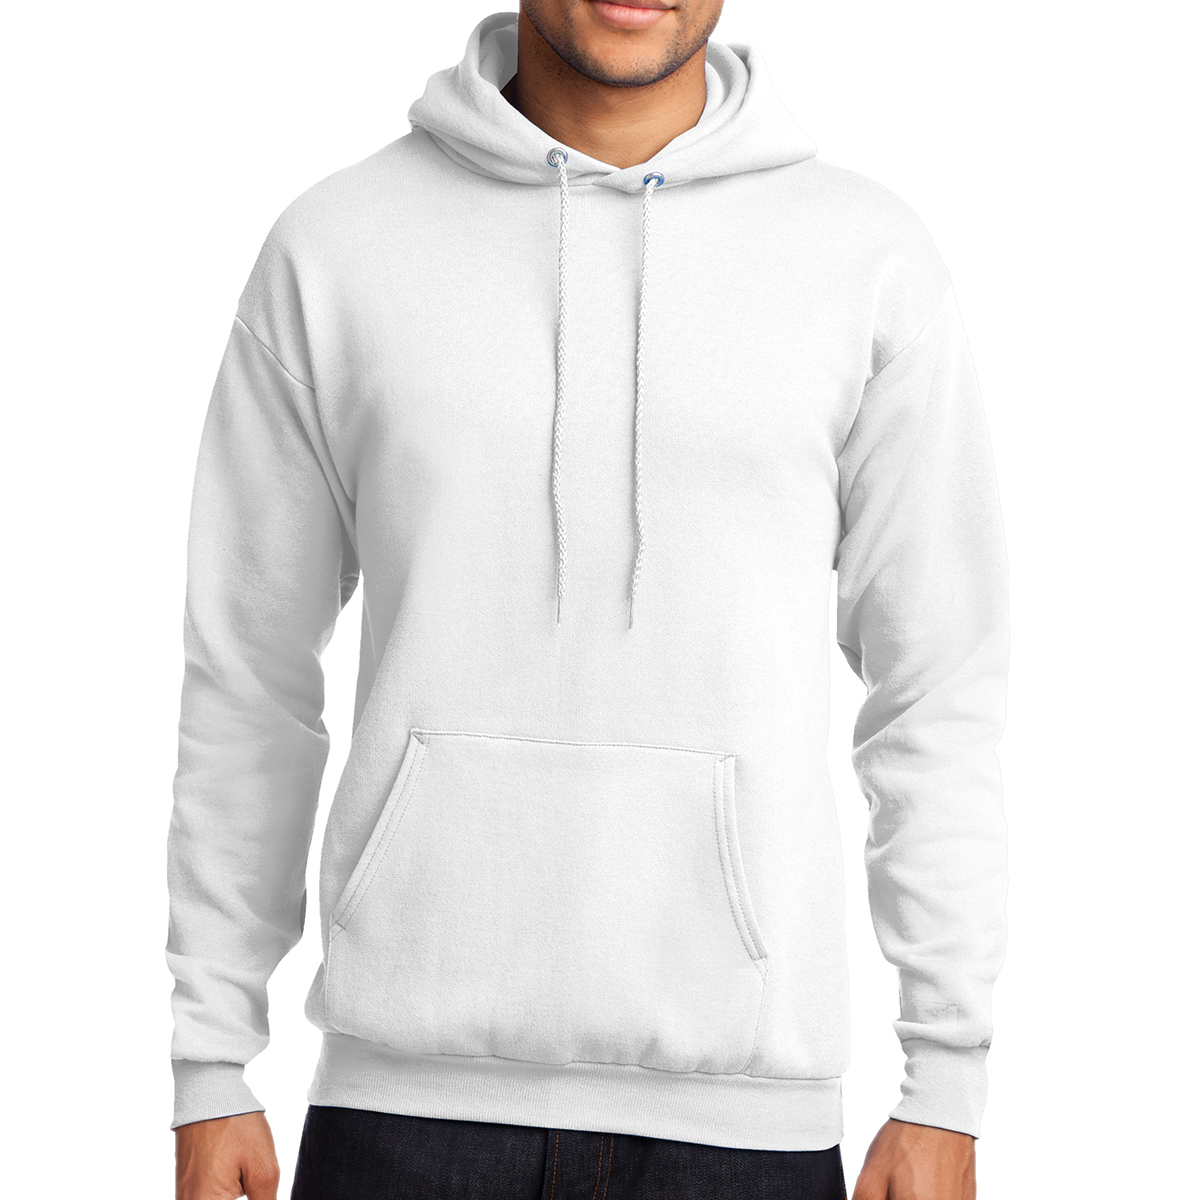 White Port & Company Classic Pullover Hooded Sweatshirt